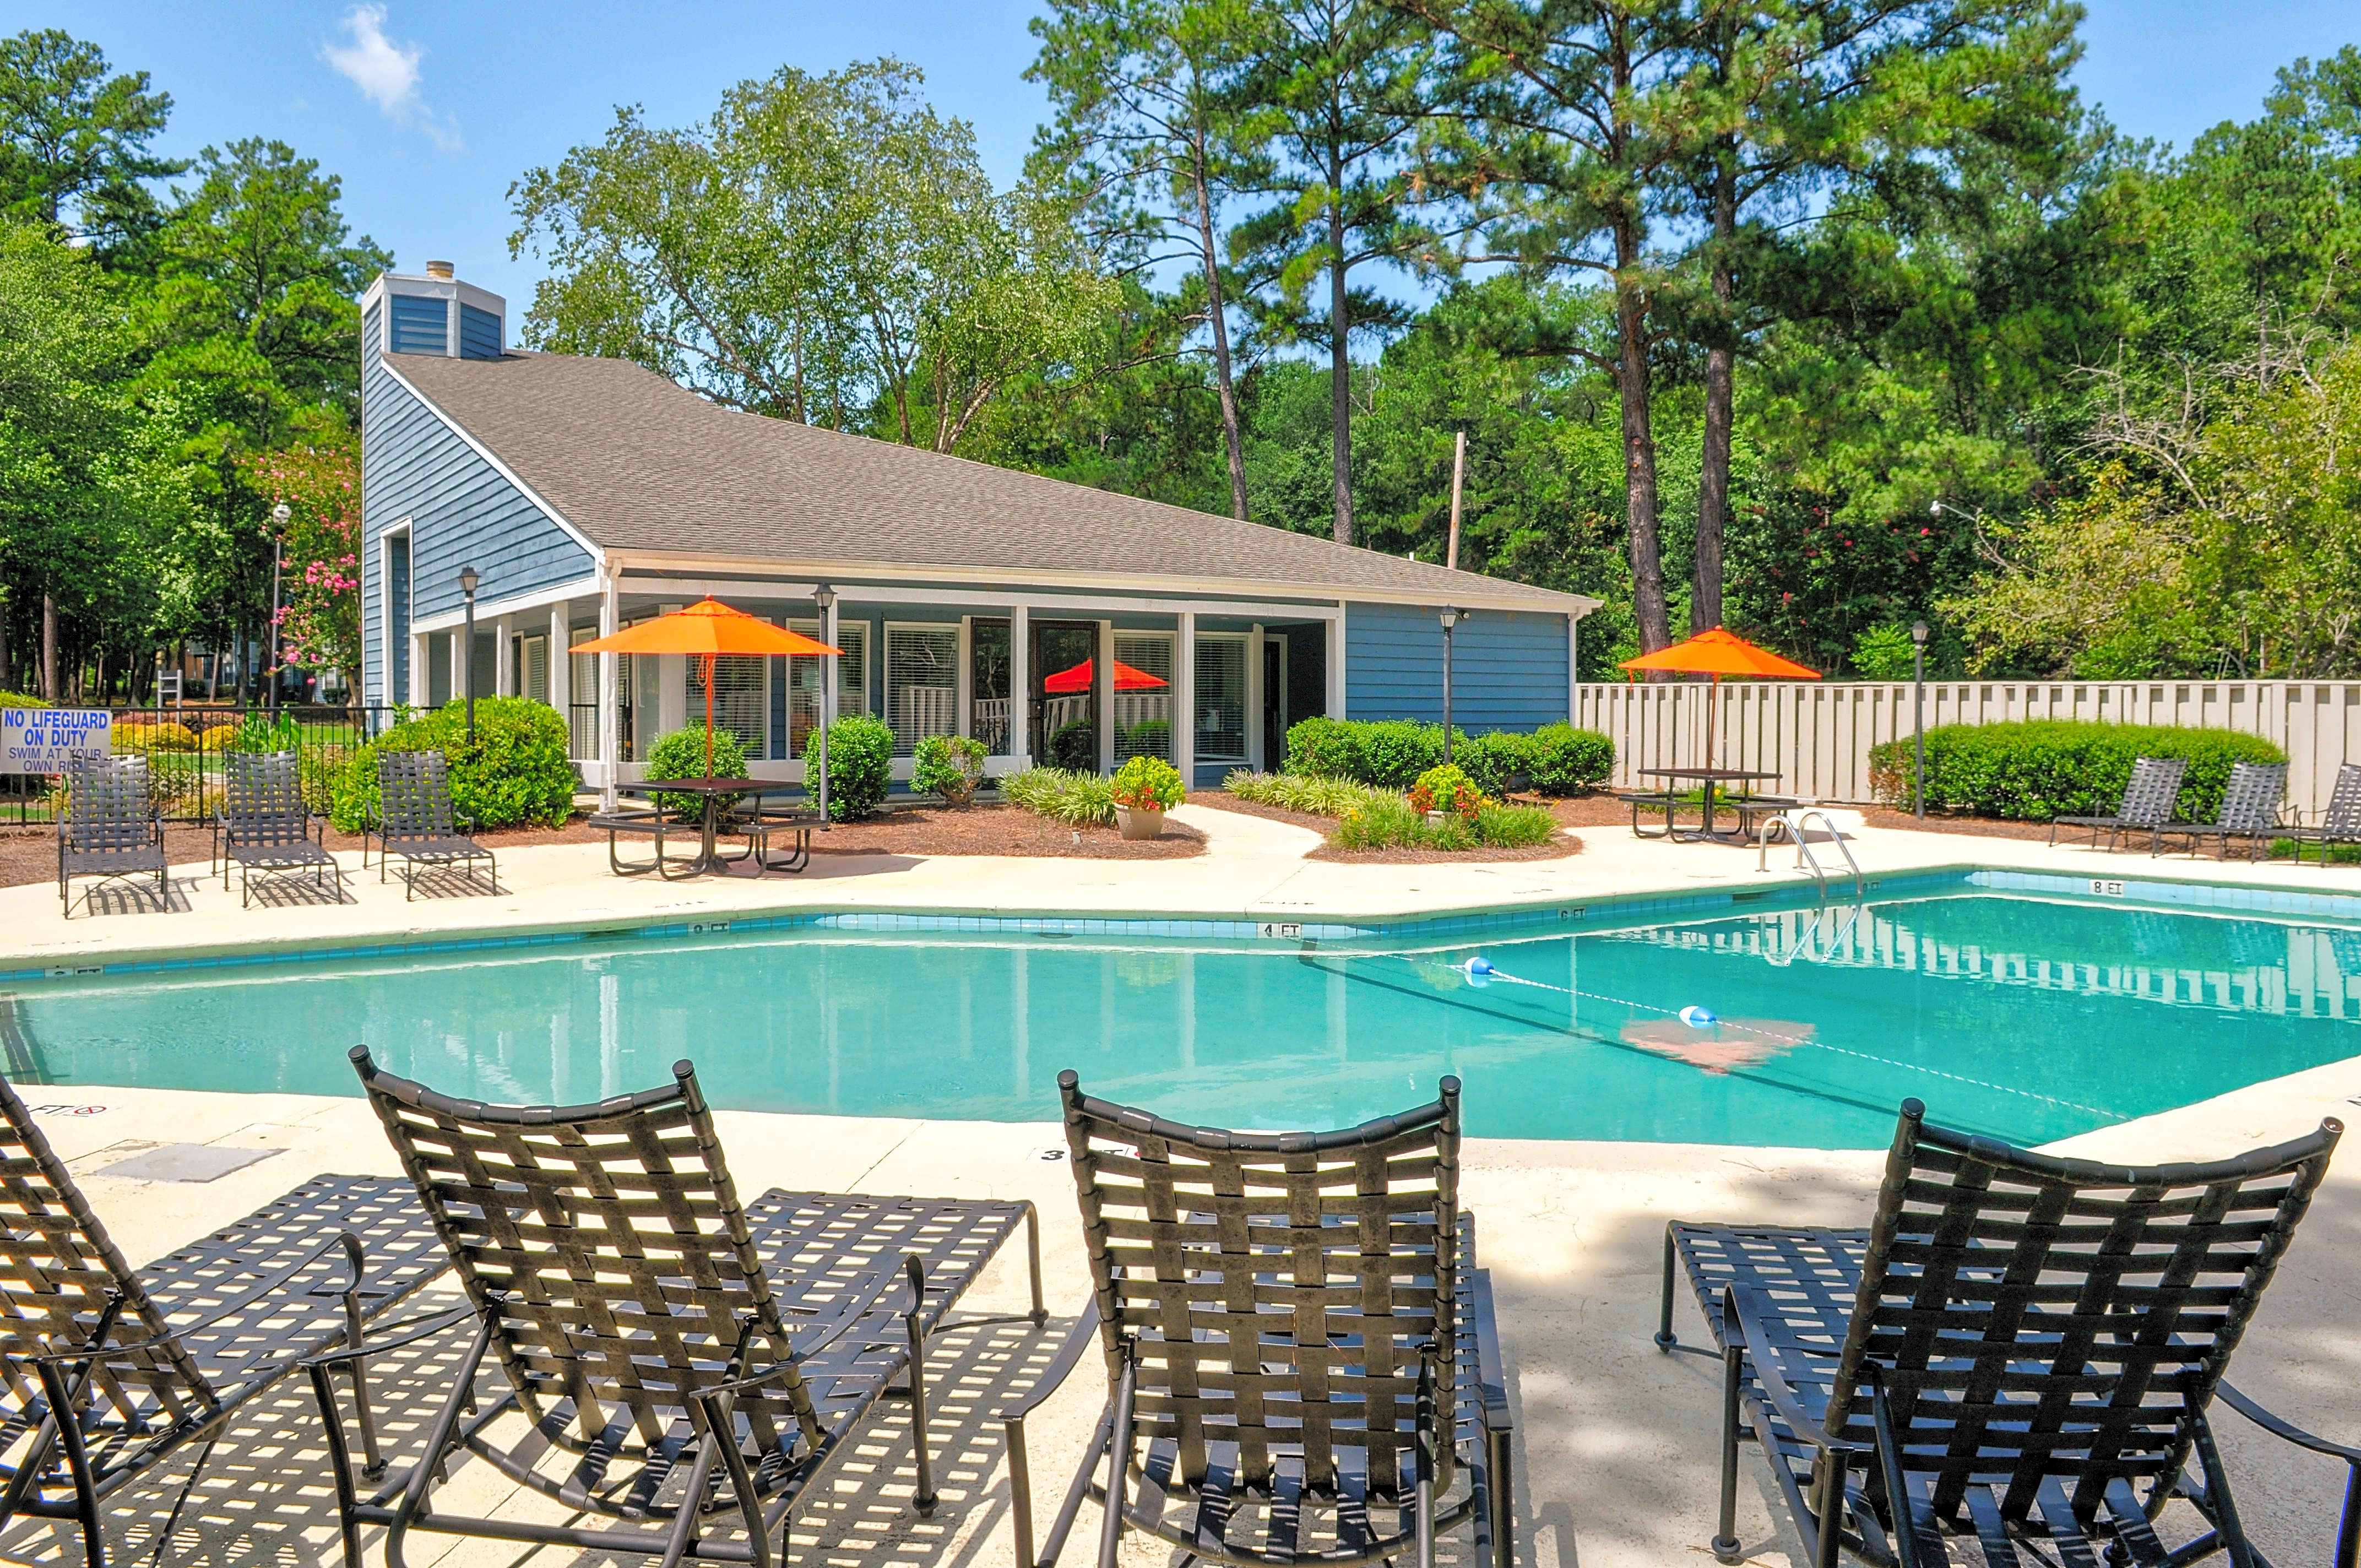 Apartments Near UofSC PROSPER Fairways for University of South Carolina Students in Columbia, SC